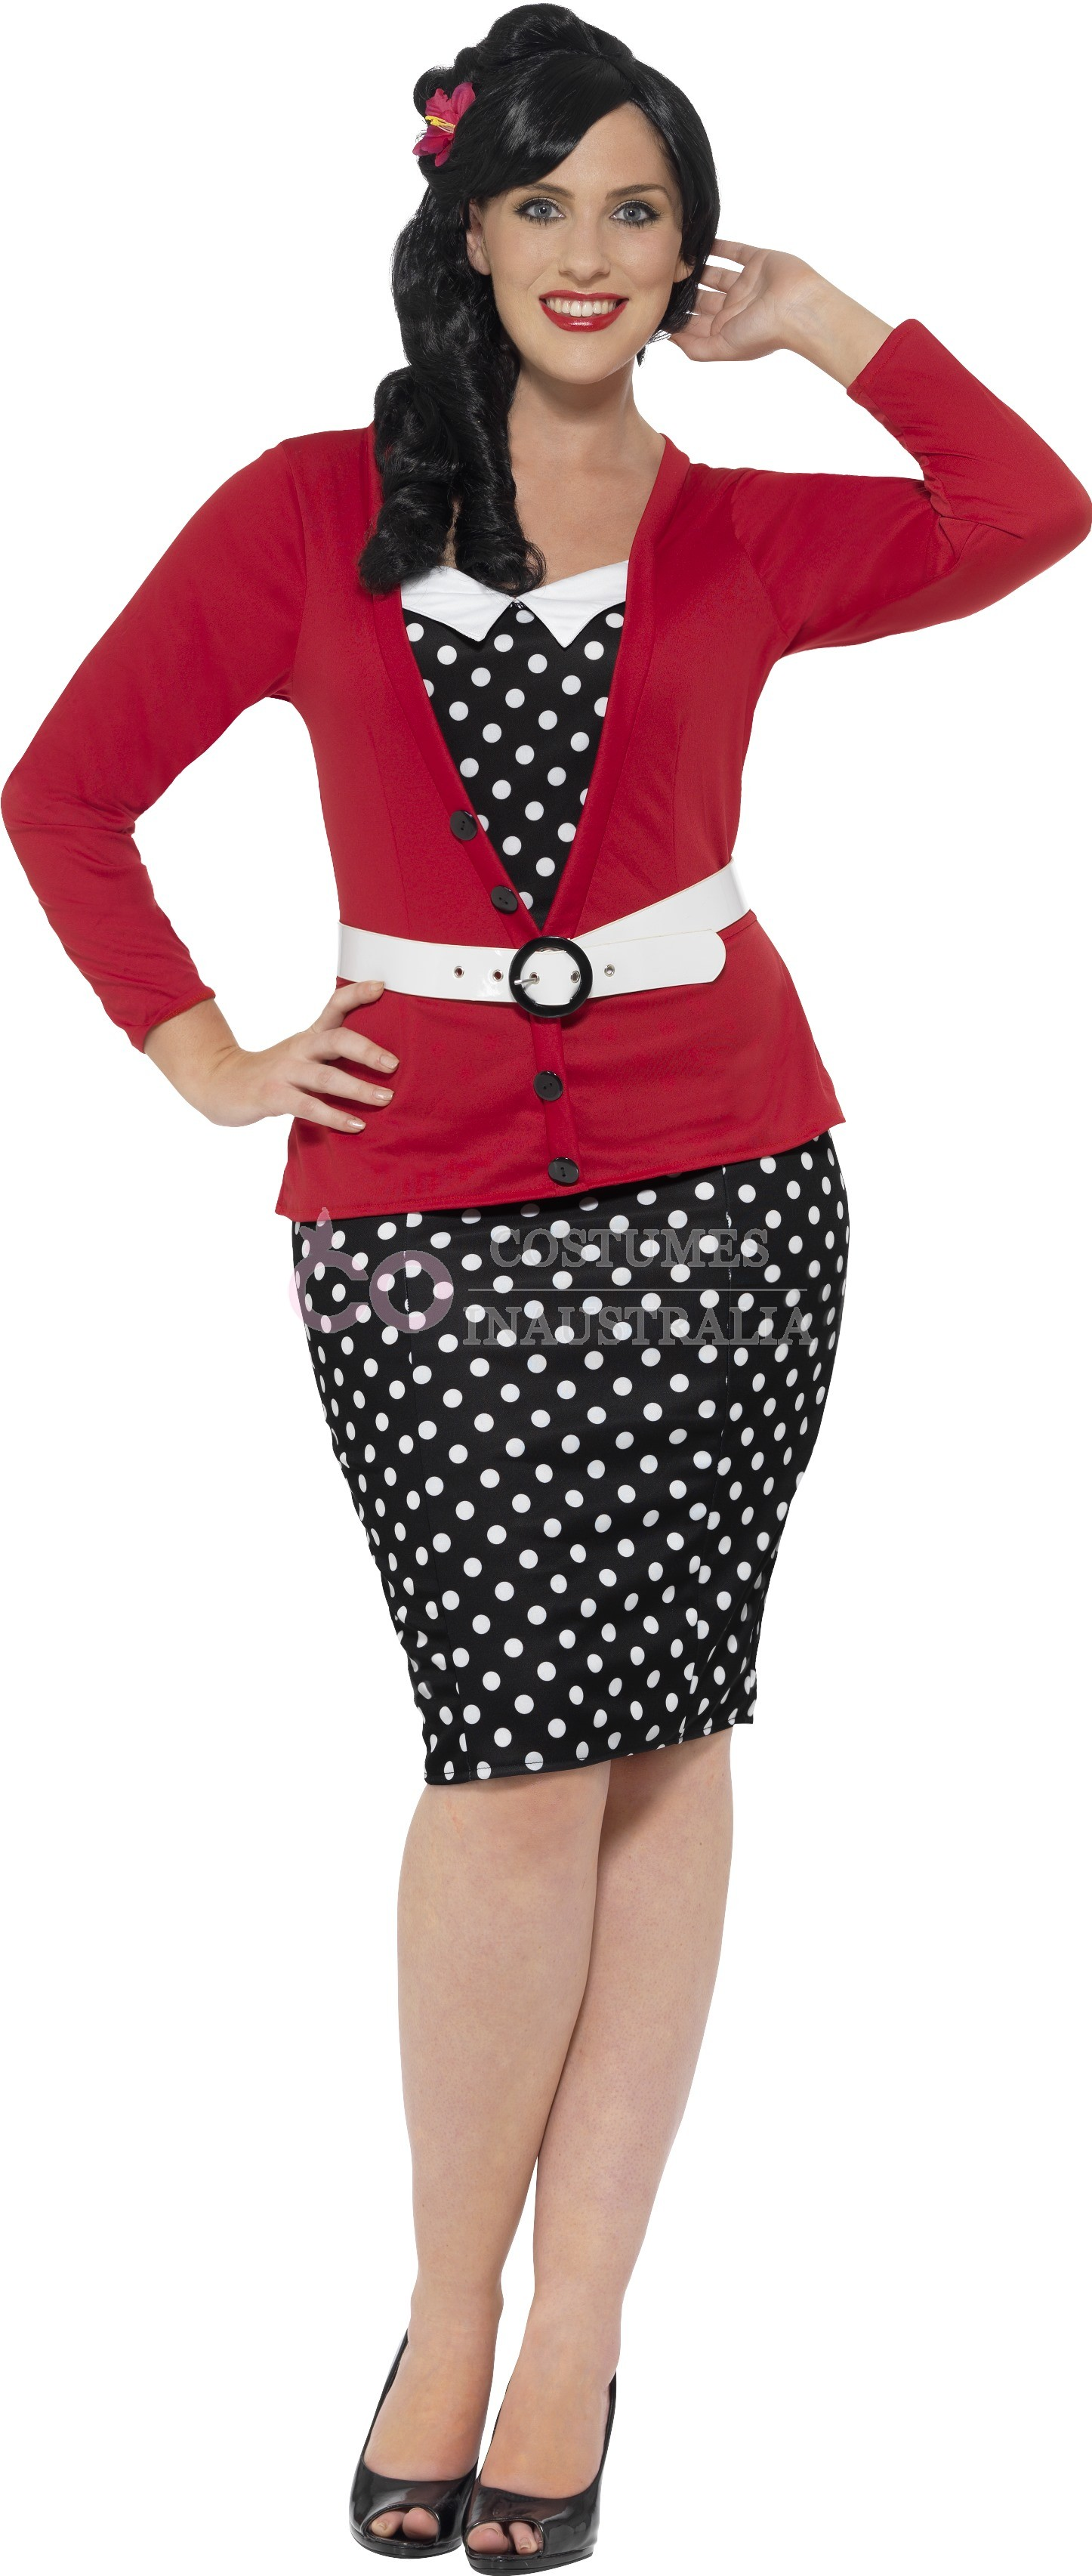 Curves 50 S Pin Up Costume Dress Up Rock And Roll Polka